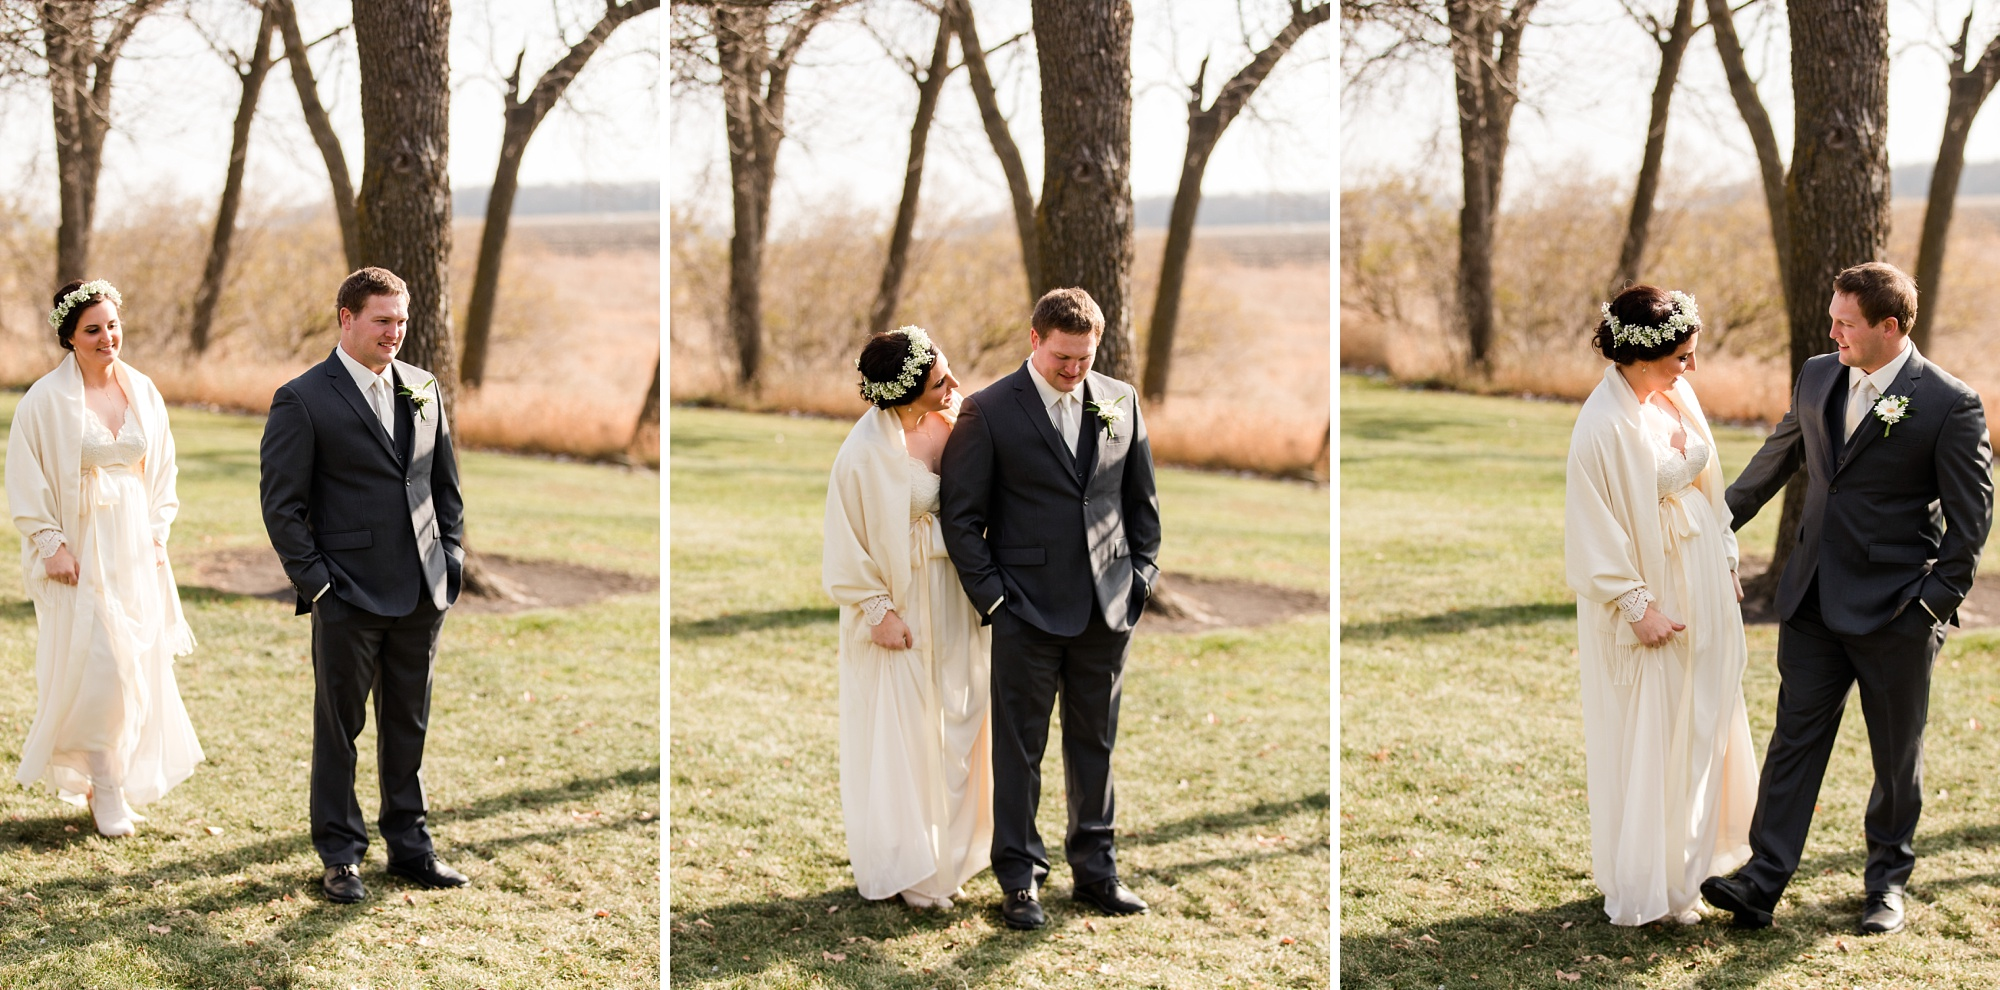 Amber Langerud_Rustic Oaks, MN winter barn wedding_0513.jpg